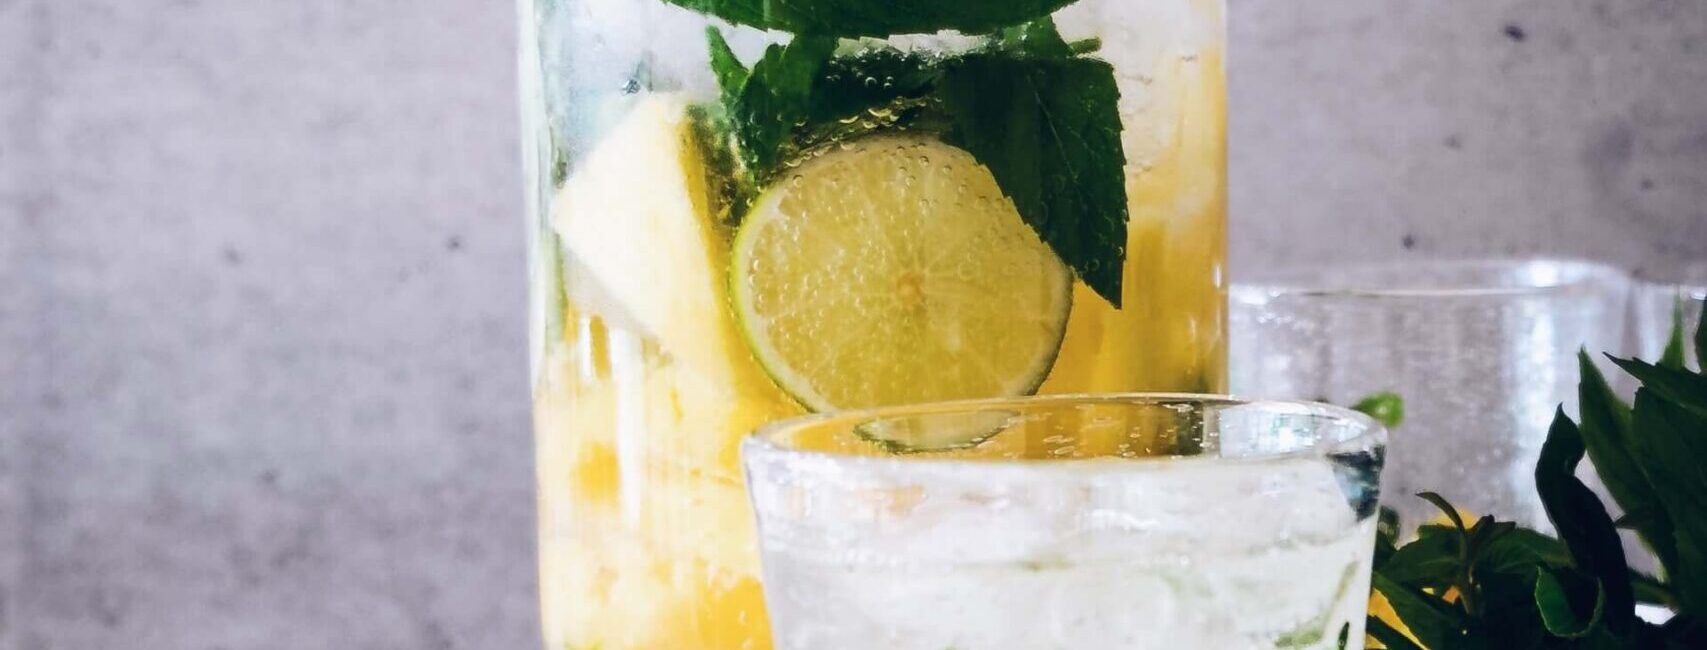 The Simple Goodness of Lemon Water